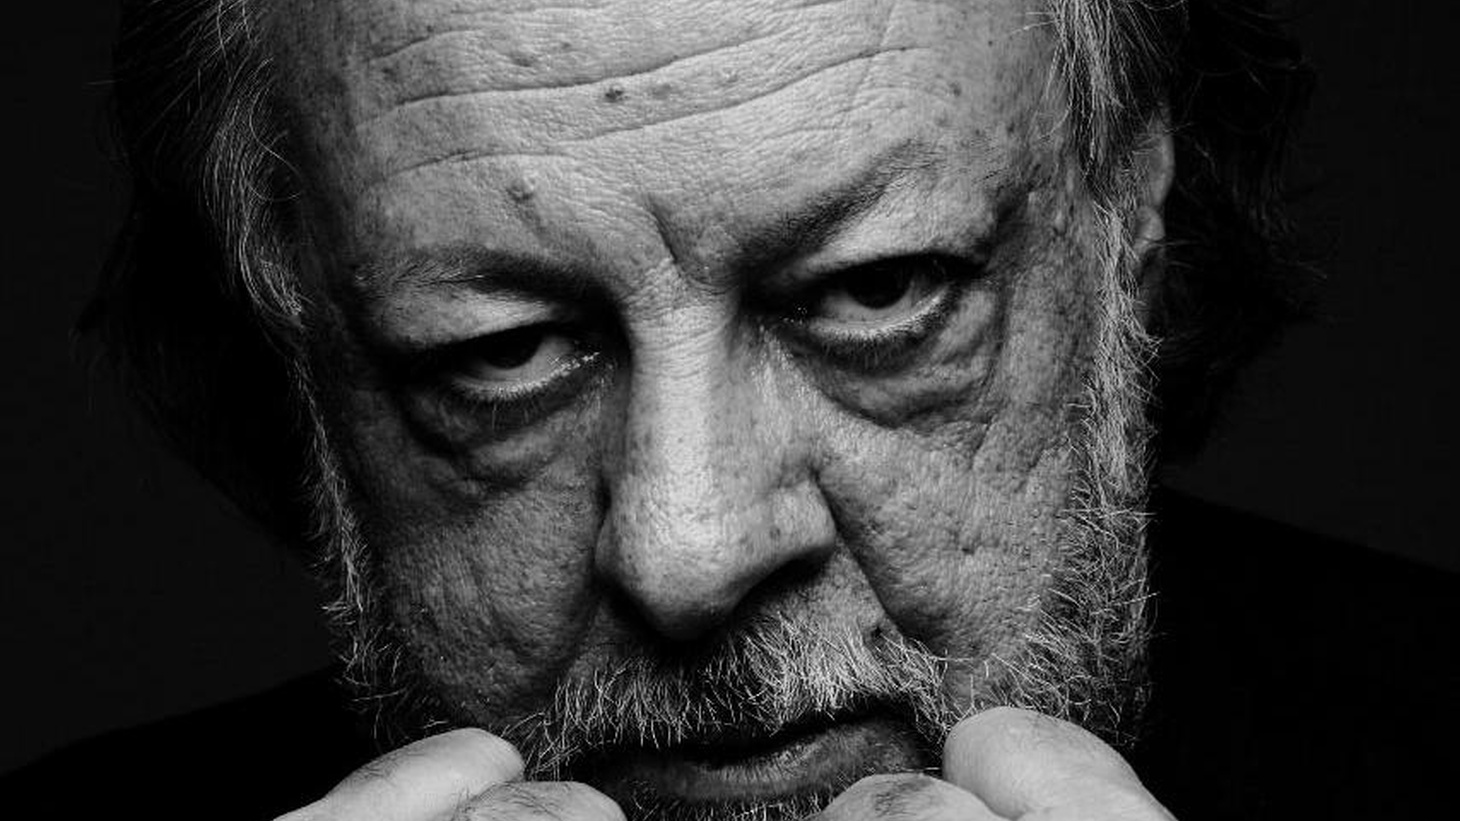 There is something very liberating about knowing that no one is who they say they are and that nothing is what it seems. If you've ever entered the world of Ricky Jay, either through his books, his radio show on KCRW (where, as a disclaimer, I should say he became an acquaintance) or his stage shows, you are assuredly aware at all times that that you are being misled, misdirected and possibly mesmerized too...